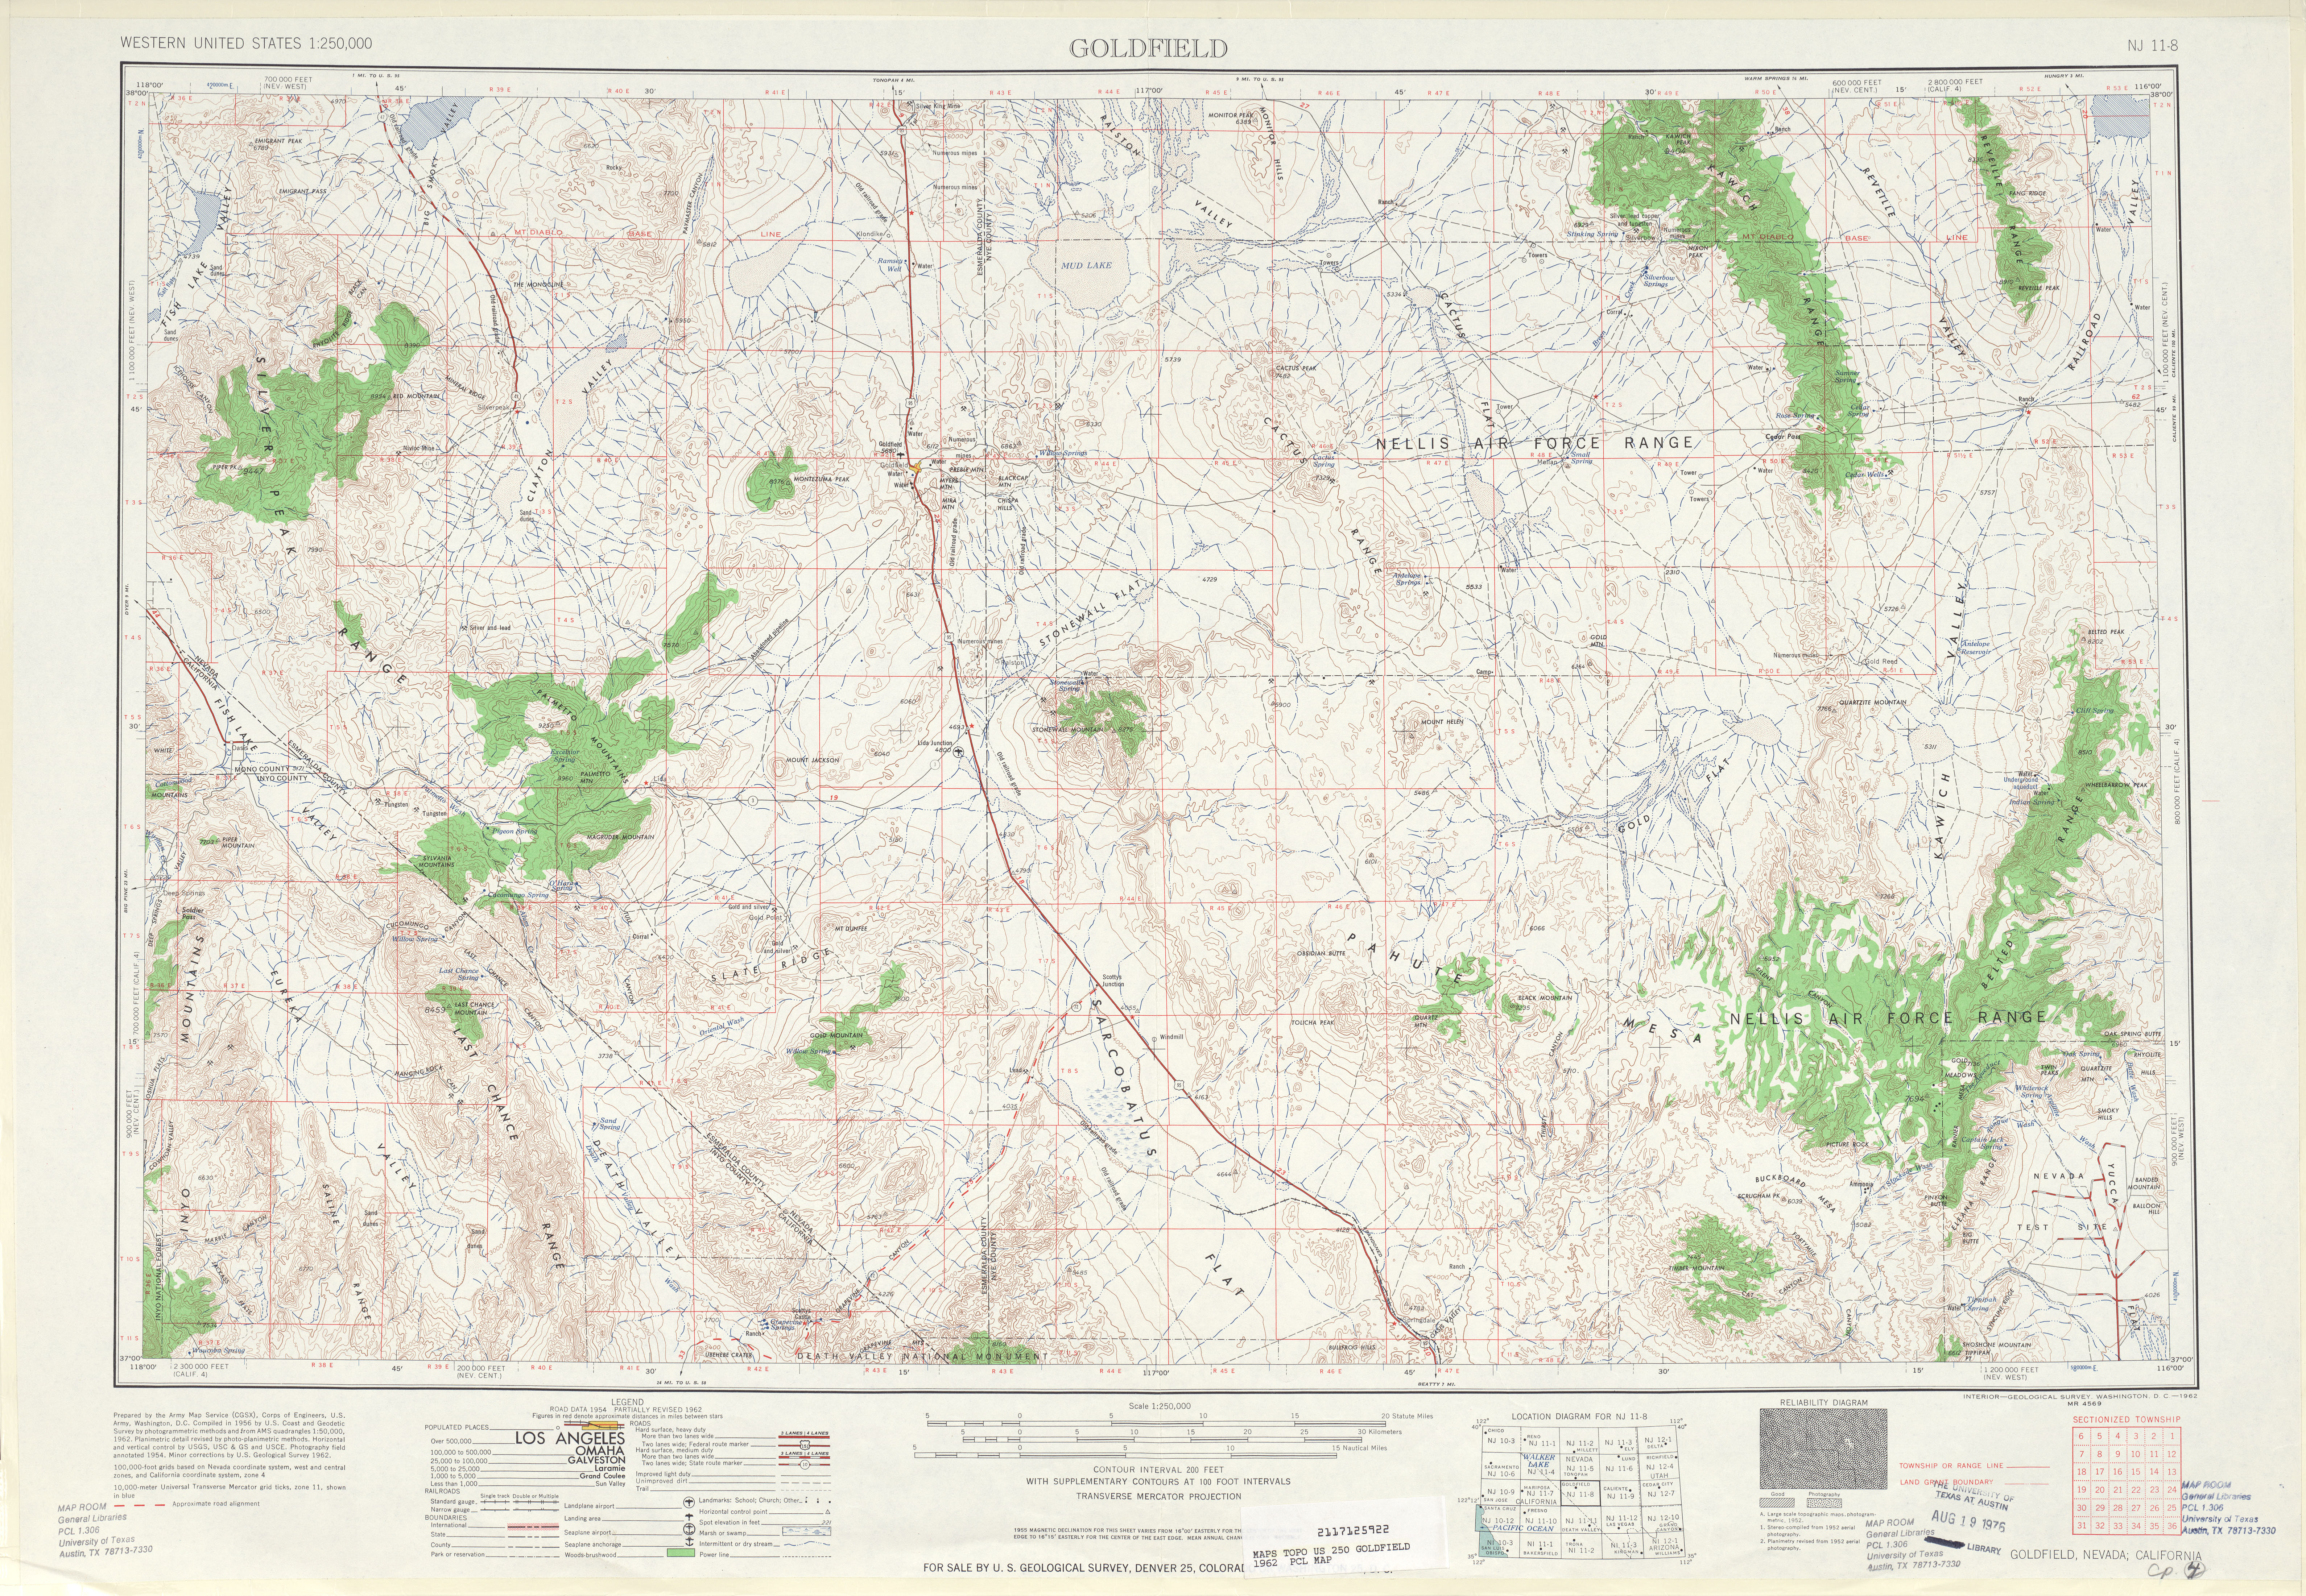 Goldfield Topographic Map Sheet, United States 1962